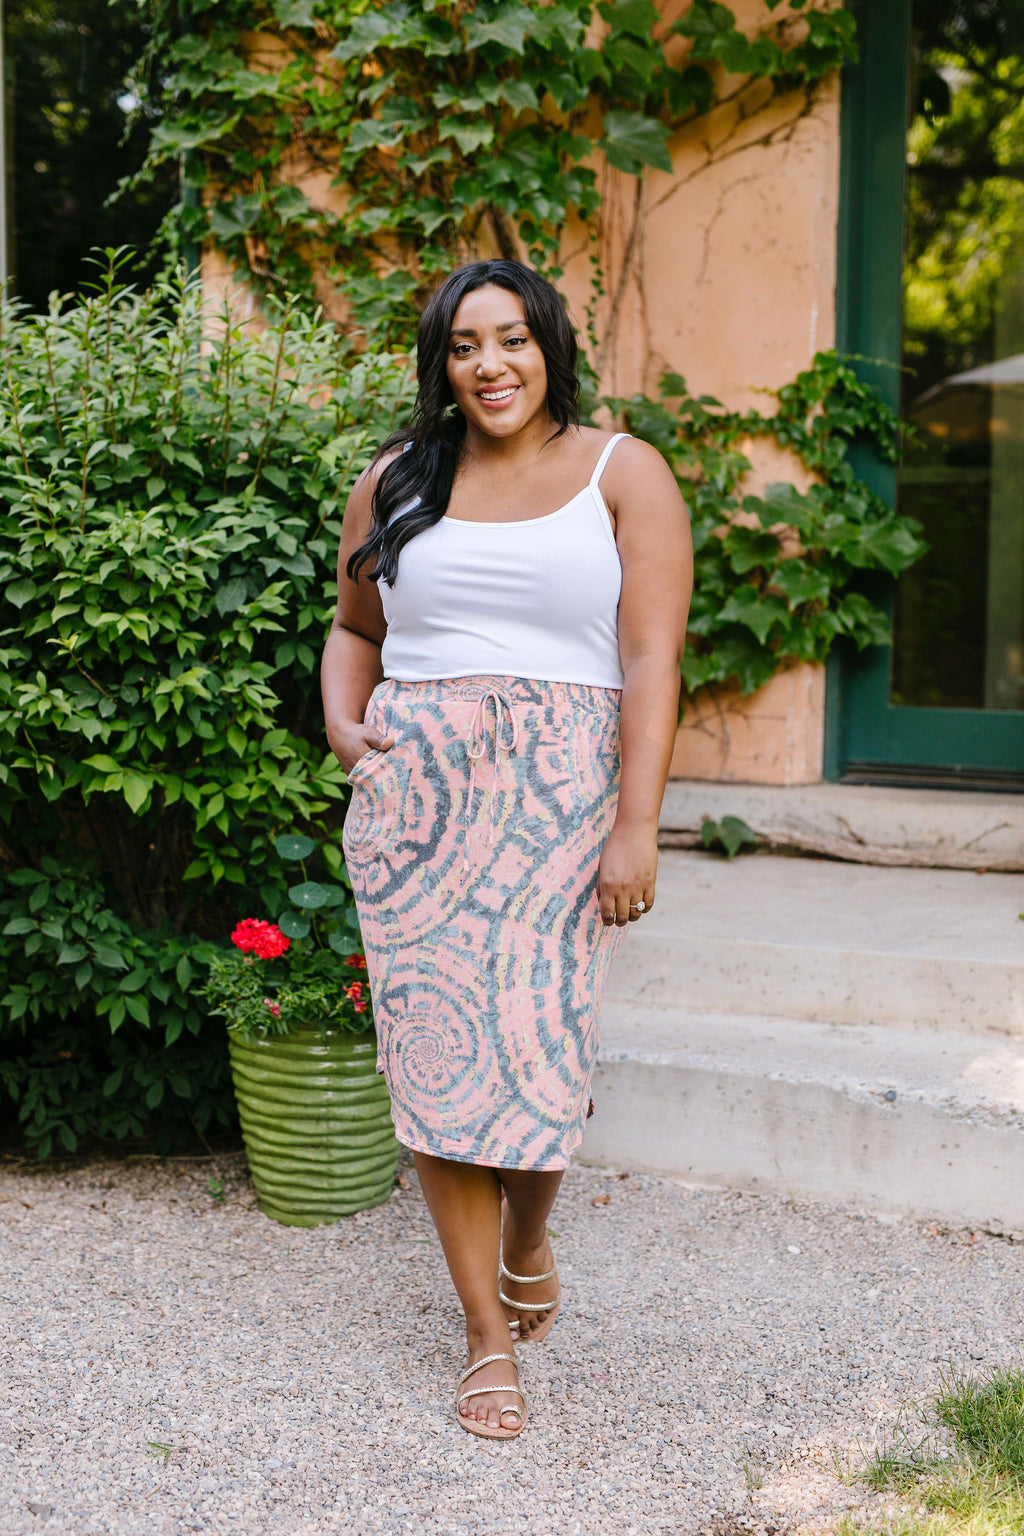 Swirl Power Drawstring Skirt - On Hand-1XL, 2XL, 3XL, 8-13-2020, 8-21-2020, BFCM2020, Bonus, Bottoms, Group A, Group B, Group C, Group D, Large, Made in the USA, Medium, Plus, Small, XL, XS-Medium-Womens Artisan USA American Made Clothing Accessories